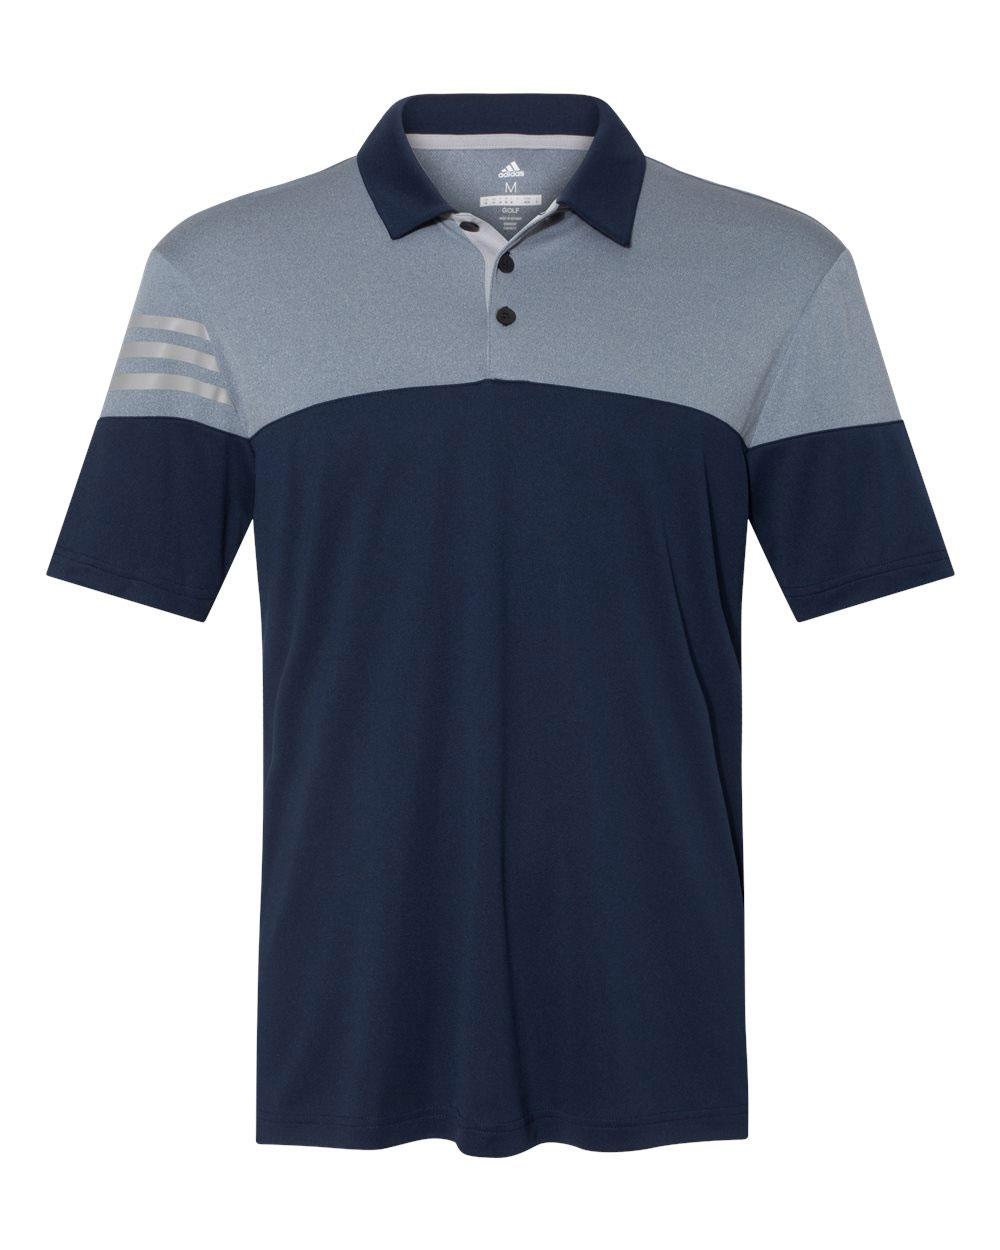 Adidas Golf 3-Stripes Heather Block Mens Polo